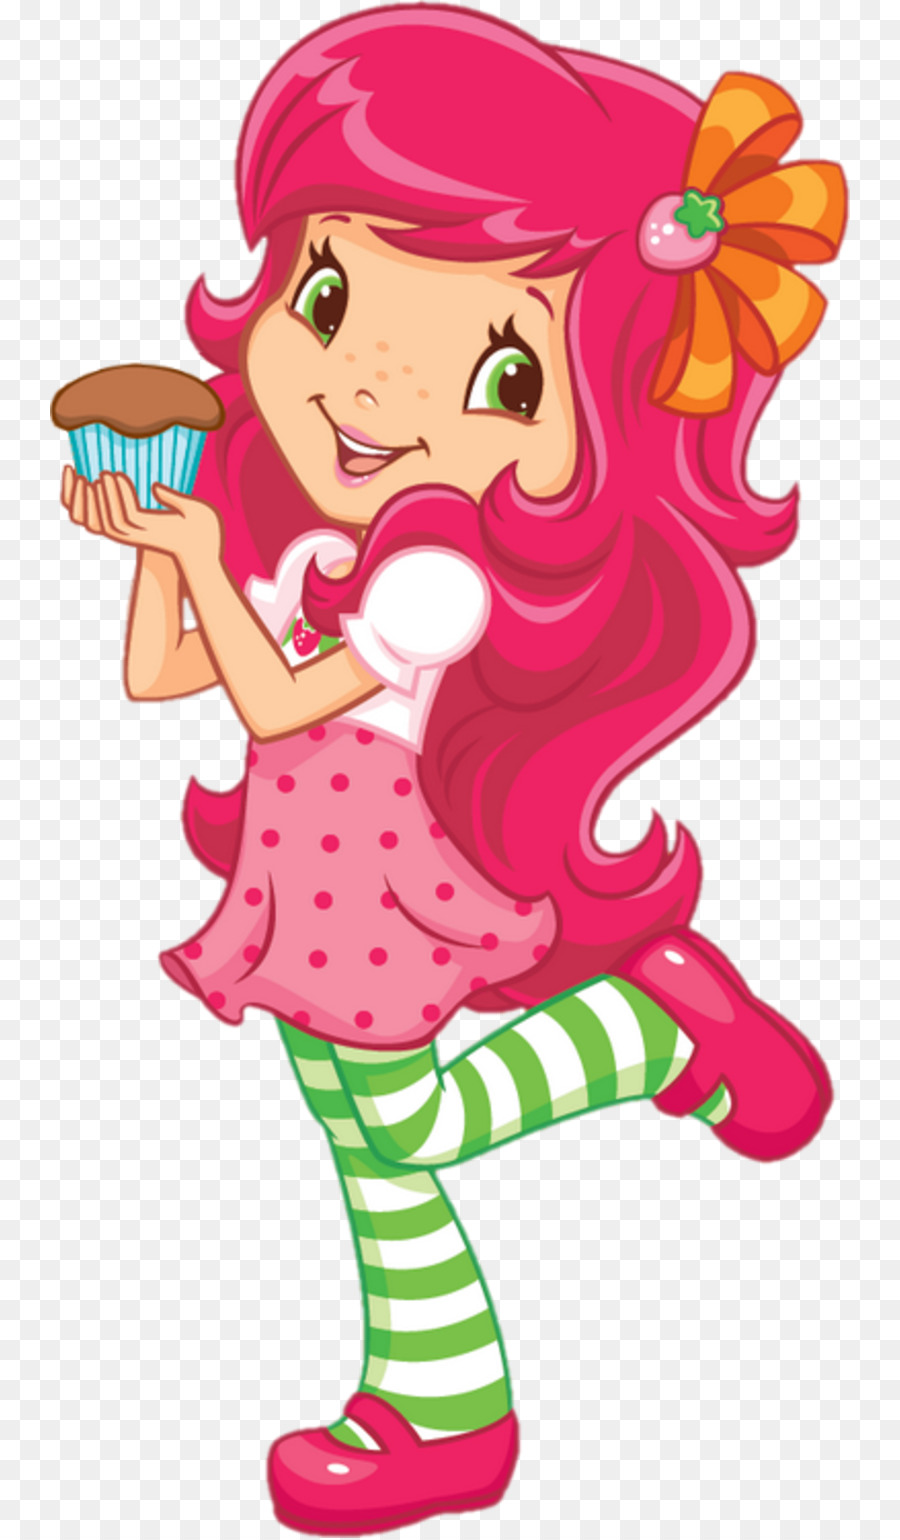 Strawberry Shortcake Wallpapers High Quality Download Free